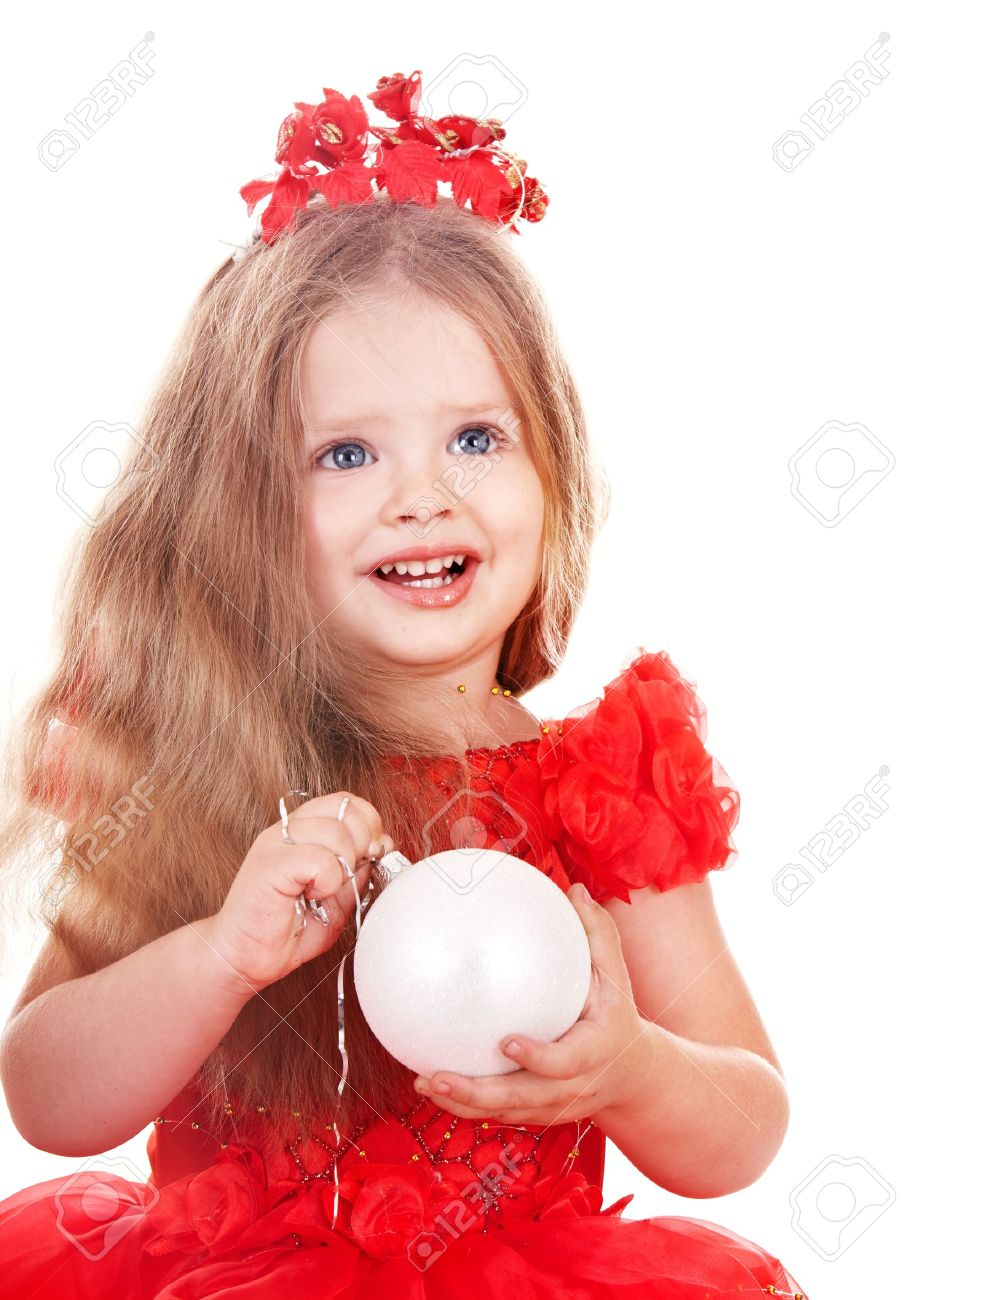 Little girl in red santa hat holding christmas ball. Isolated. Stock Photo - 8332744